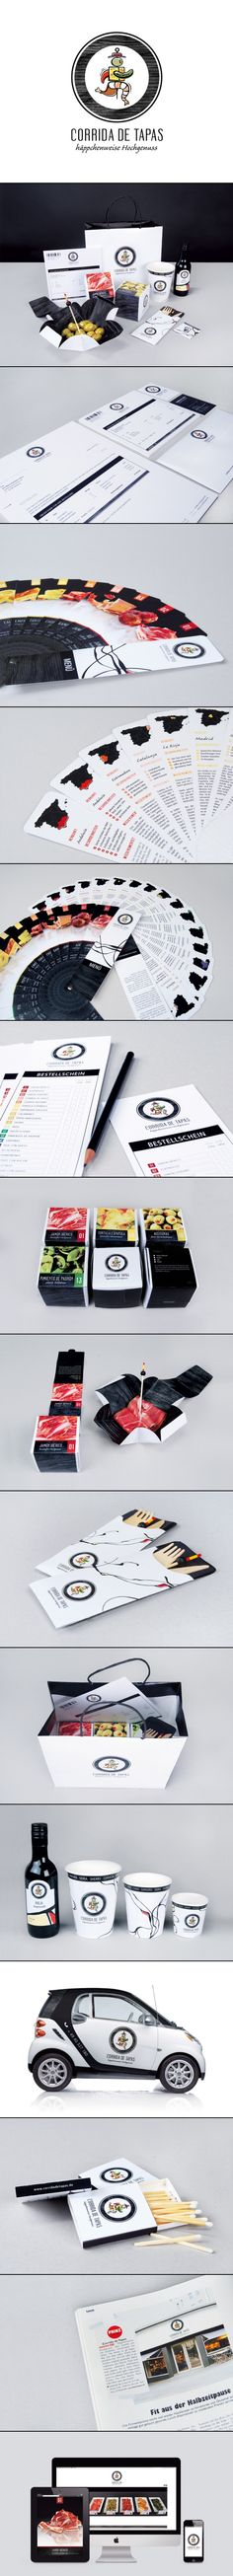 Corrida de Tapas, espectacular #diseño  Time for lunch #identity #packaging #branding PD